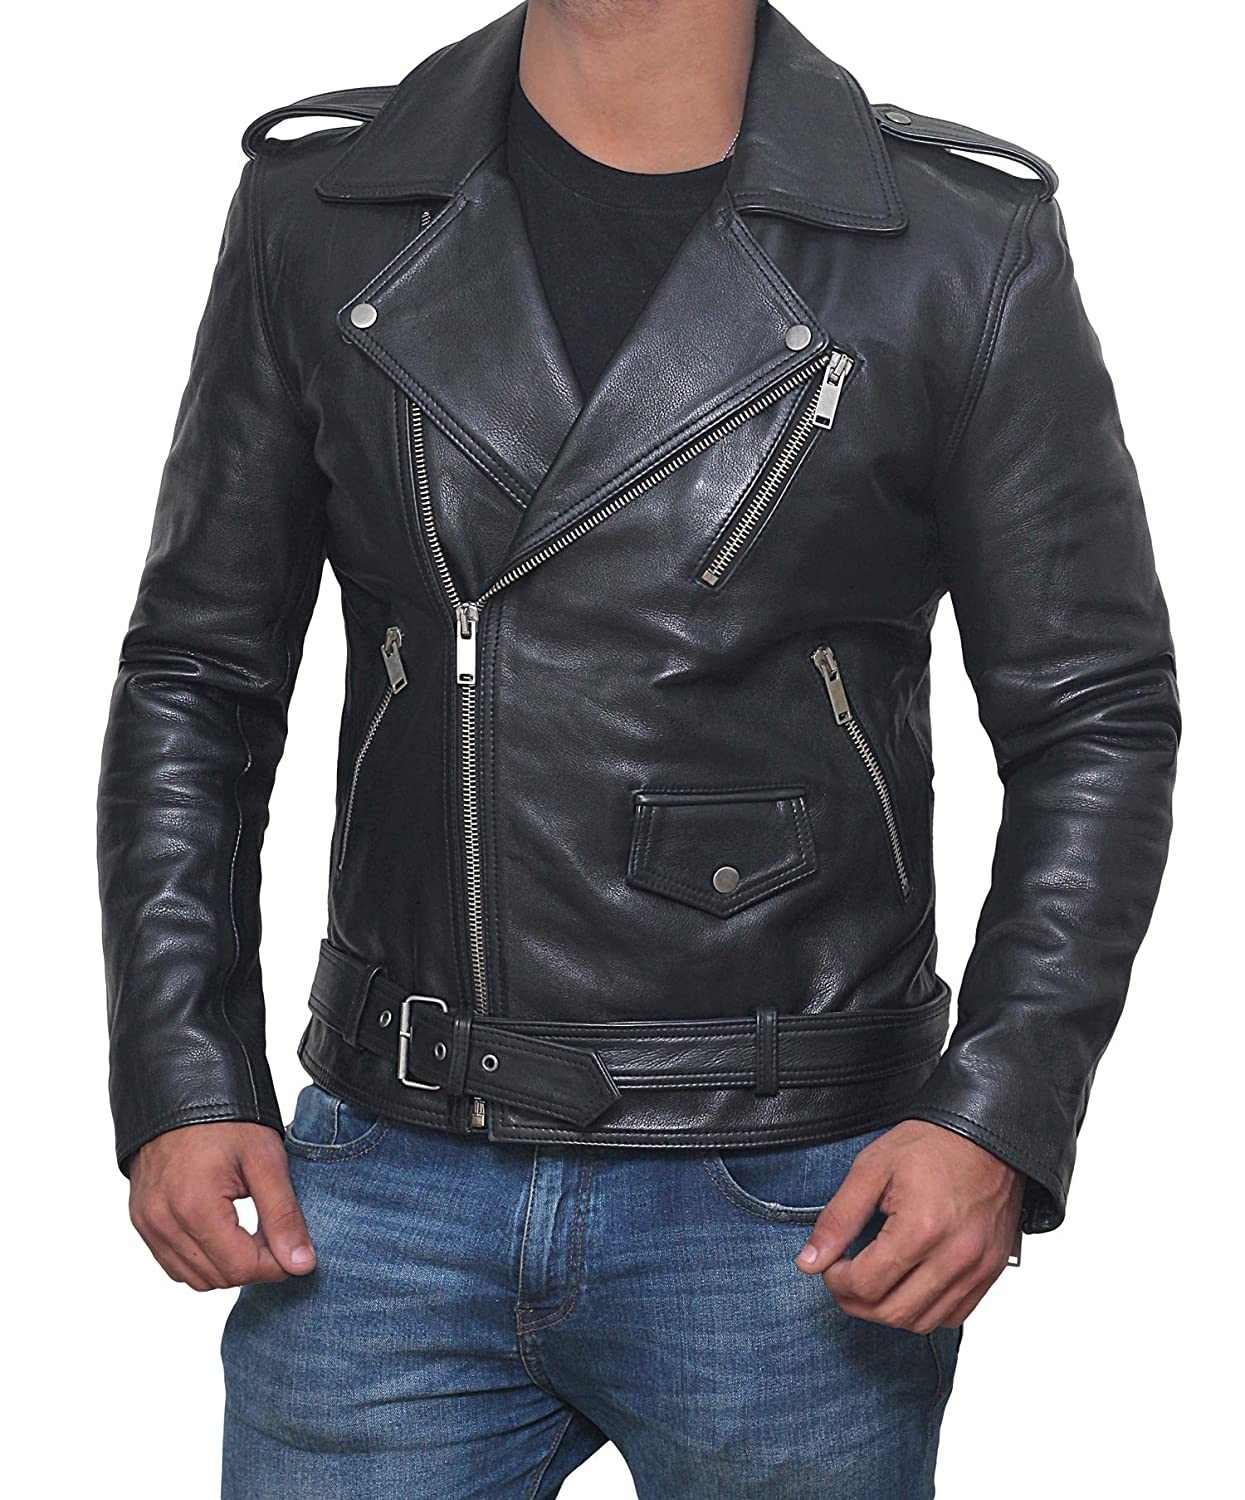 Motorcycle Leather Jacket Mens - Double Rider Biker Jackets Men 1280897-PP